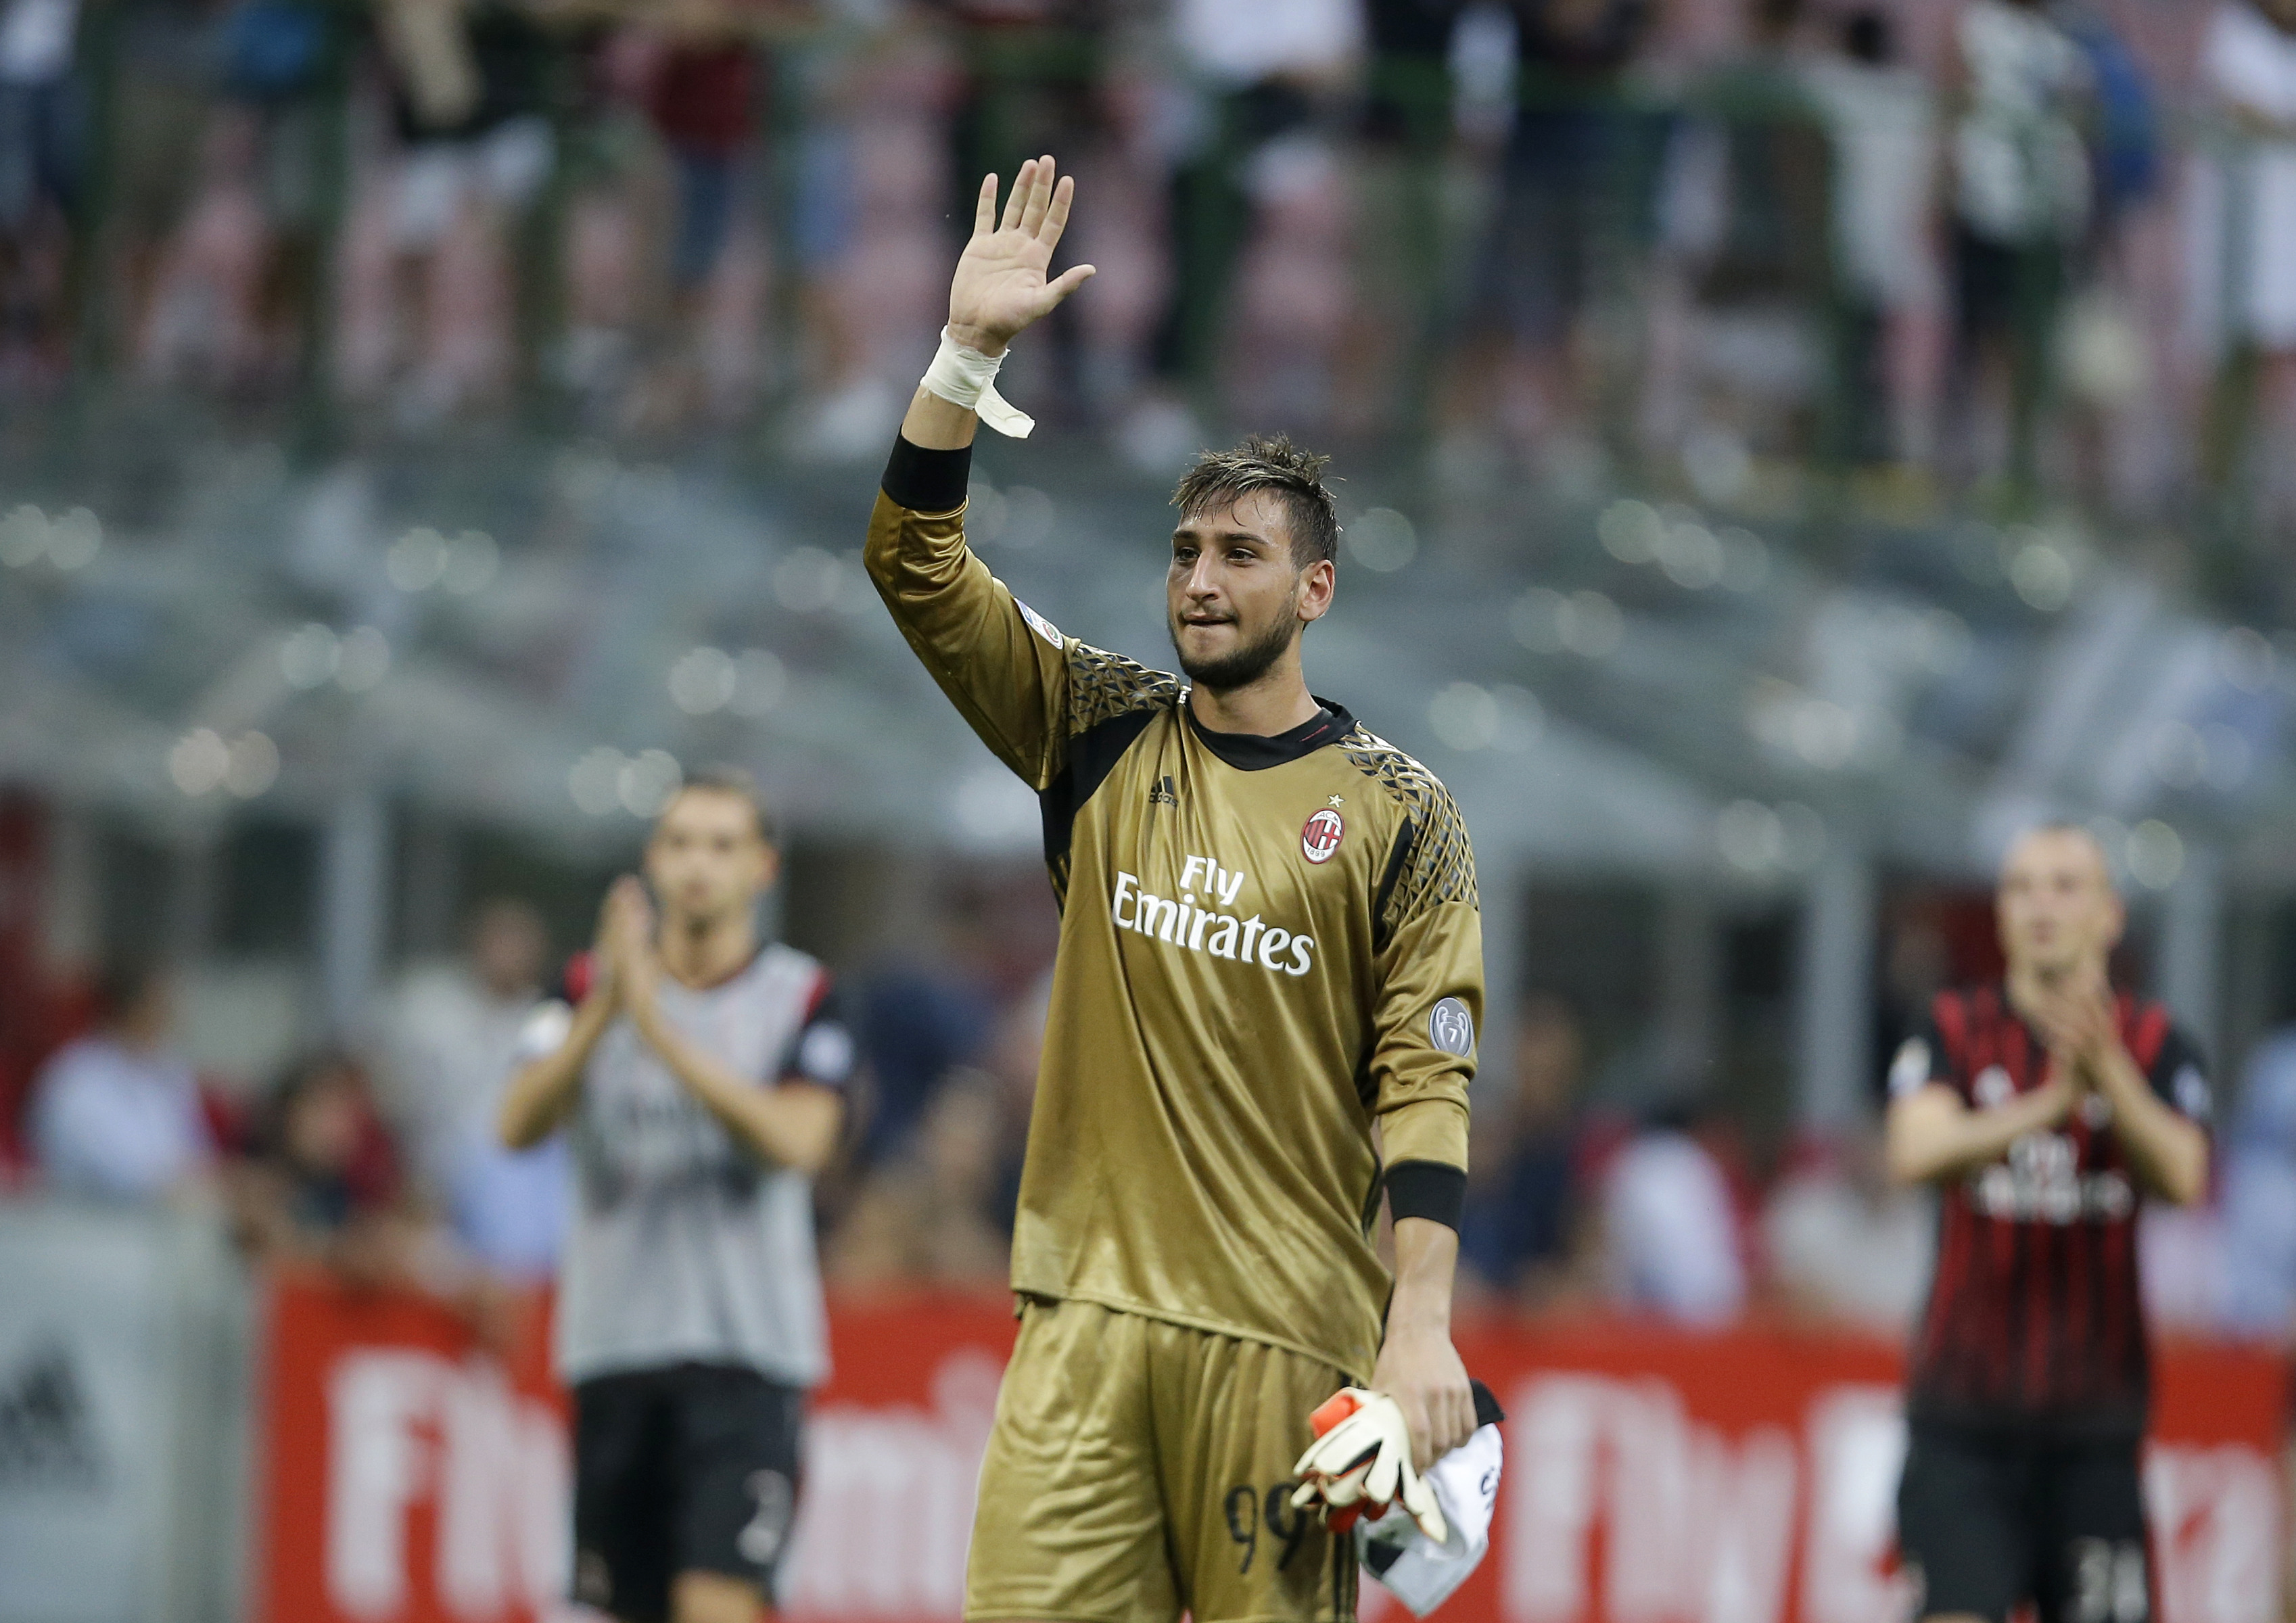 Reina will be behind Gianluigi Donnarumma in the pecking order. Image: PA Images